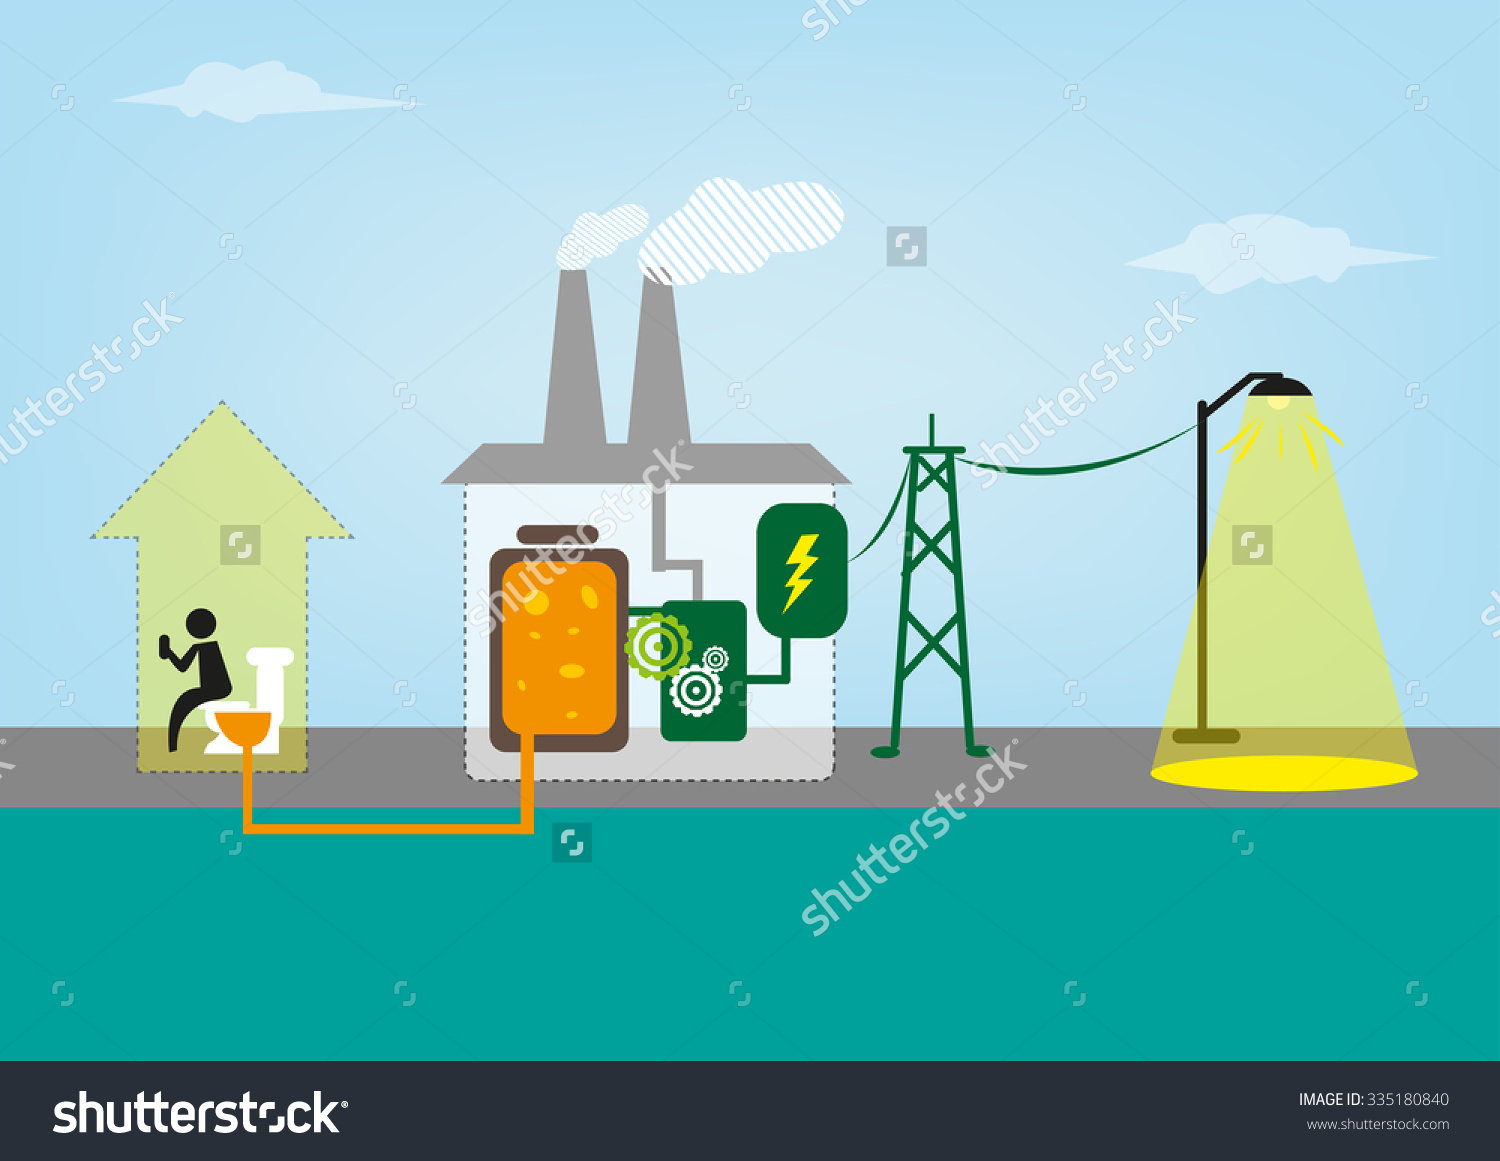 Human Wastes Converted Into Energy And Power. Editable Clip Art.